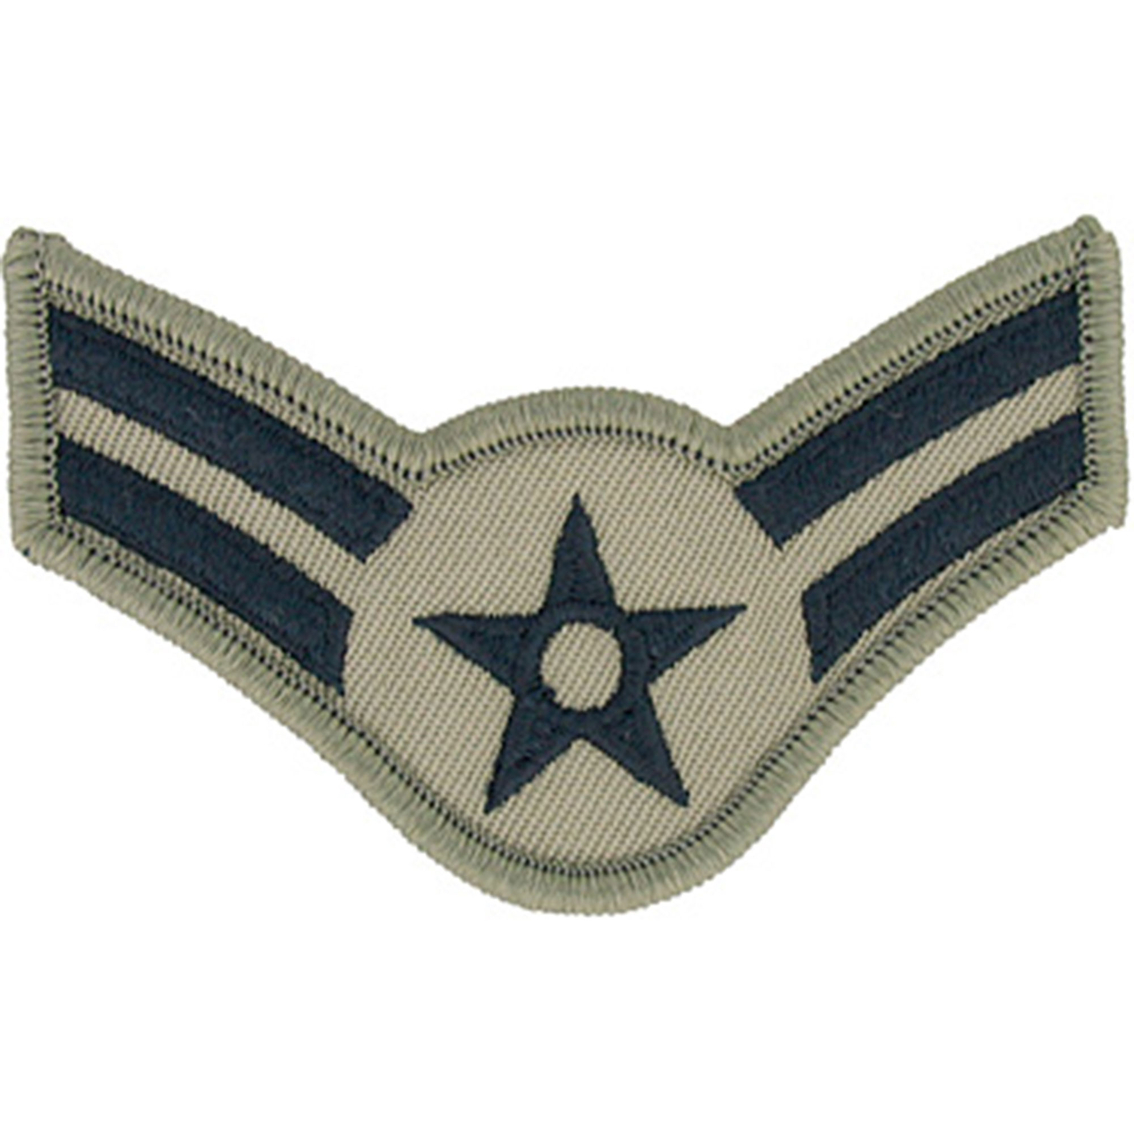 Air Force A1c Subdued Large Rank Abu Rank Shop The